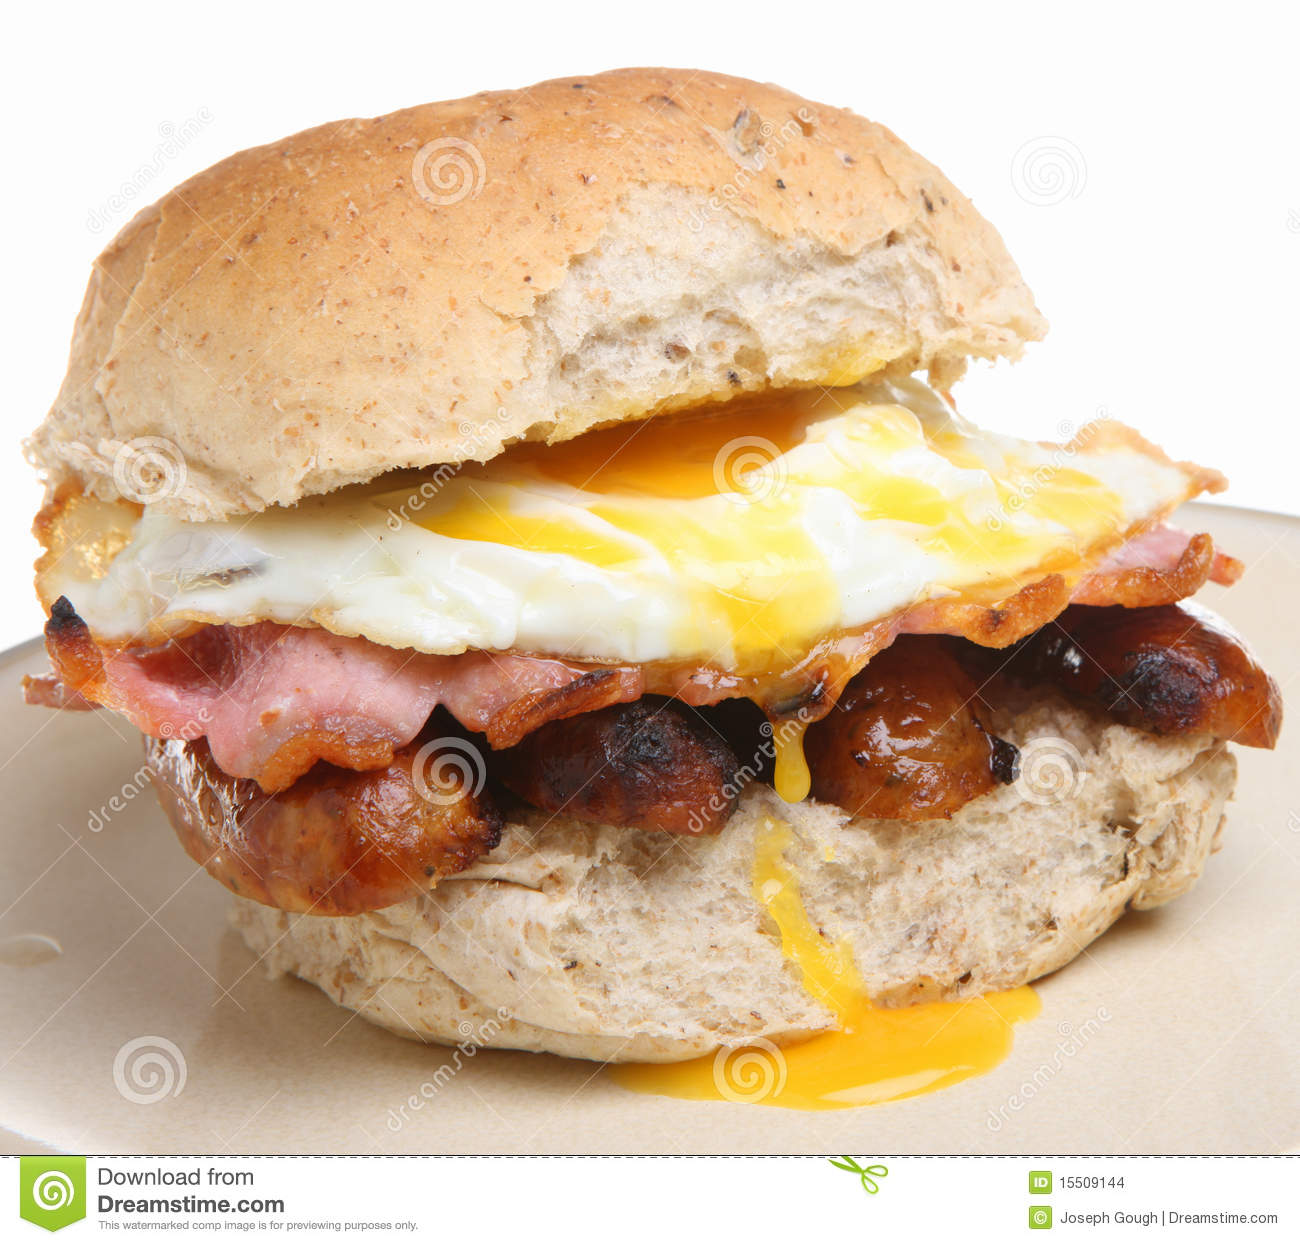 Breakfast Roll With Sausage, Bacon & Egg Stock Images - Image ...